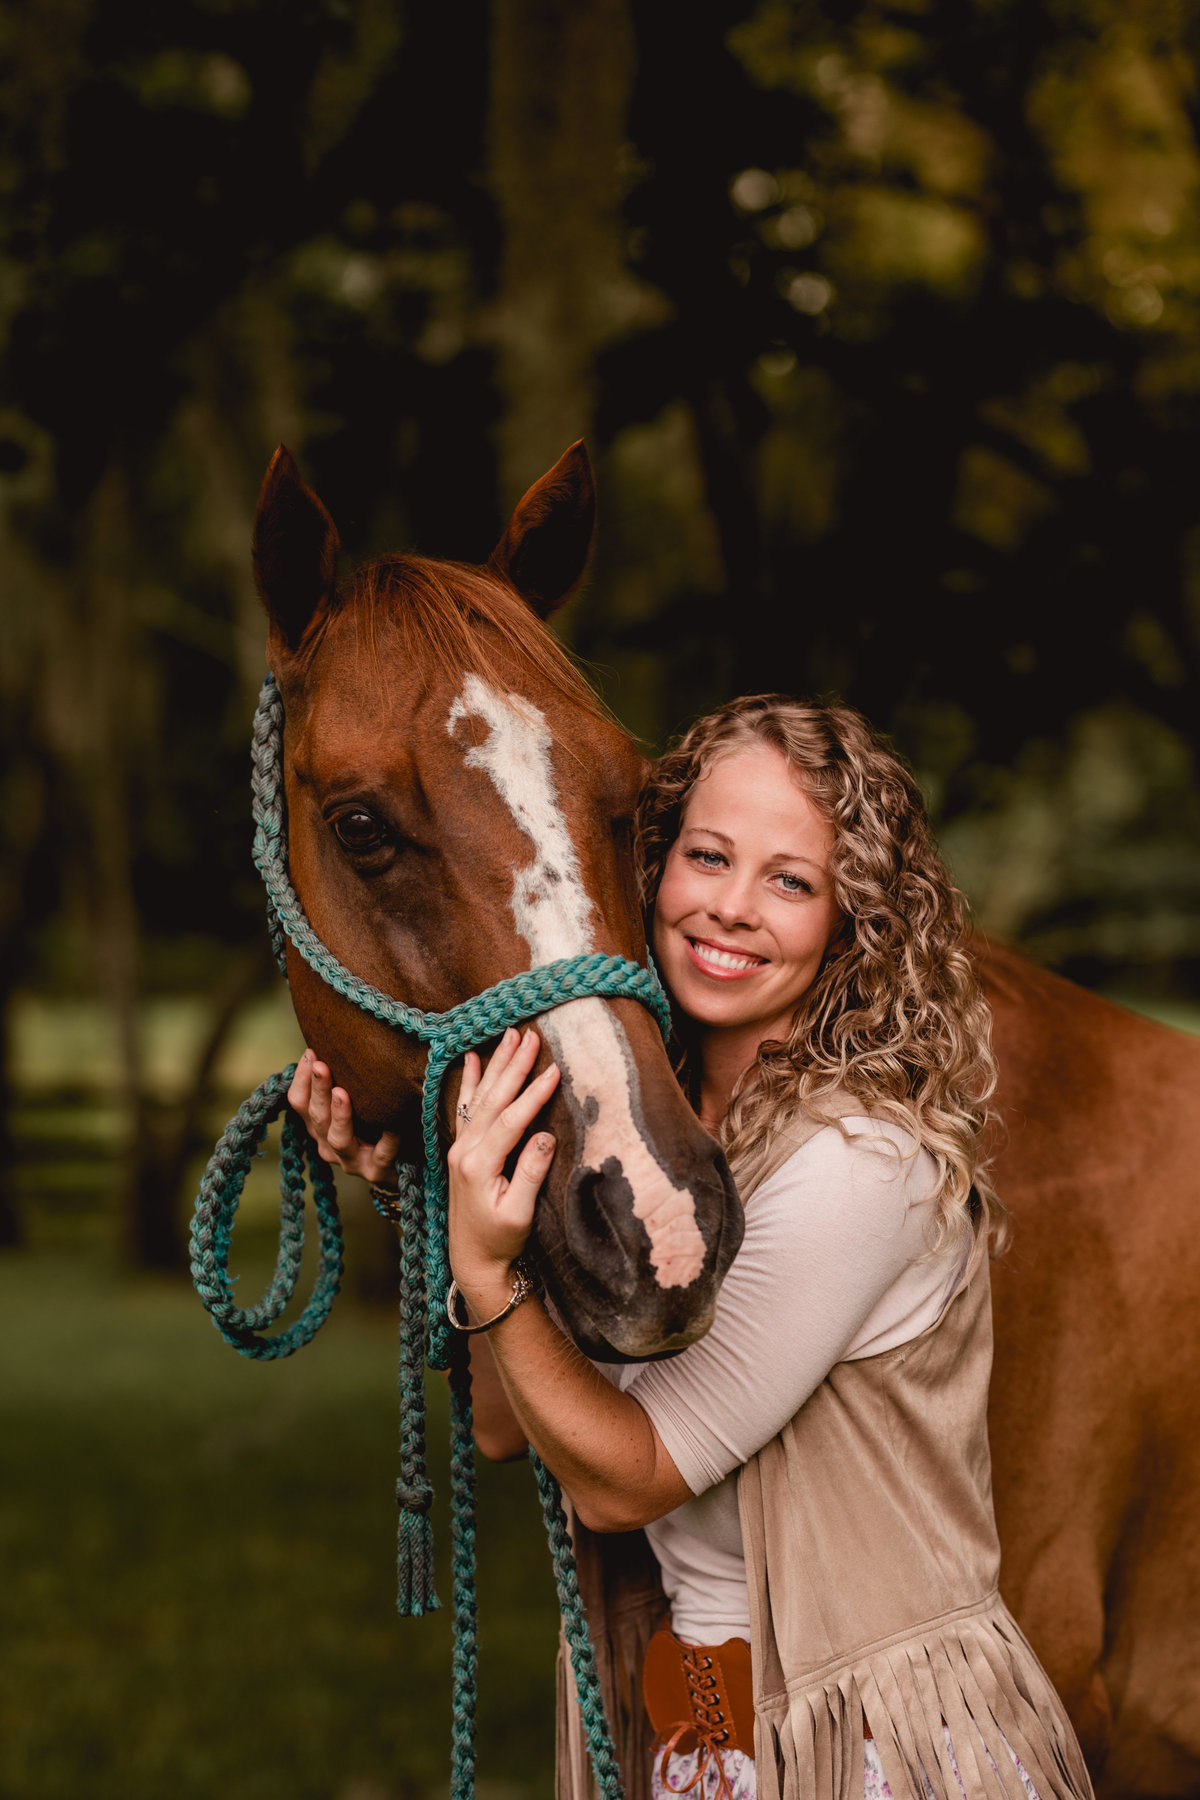 Barrel racing horse with his rider in North Florida by equine photographer.